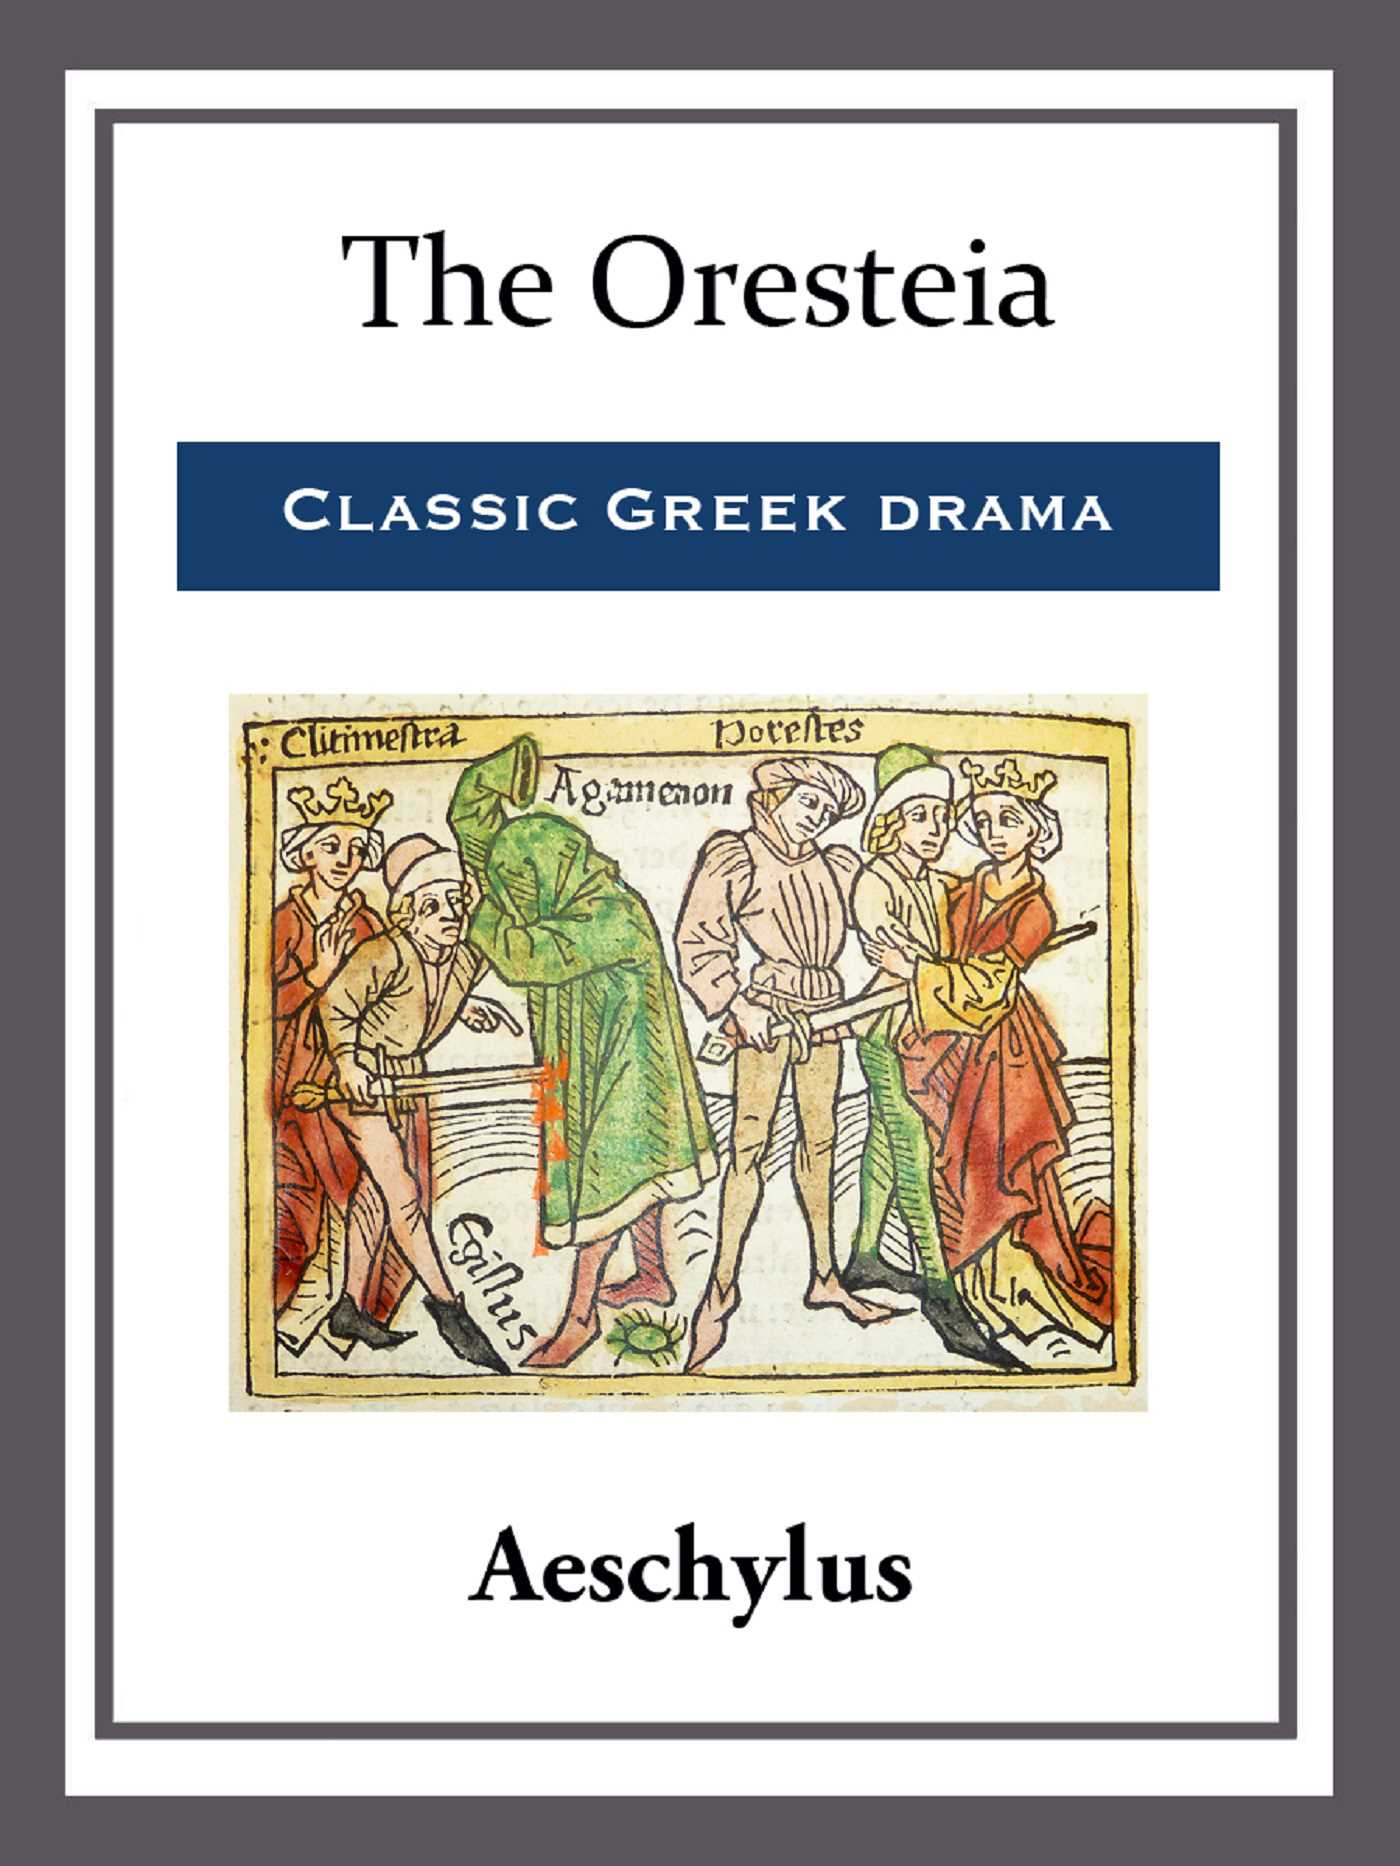 an analysis of darkness and light imagery in the oresteia by aeschylus